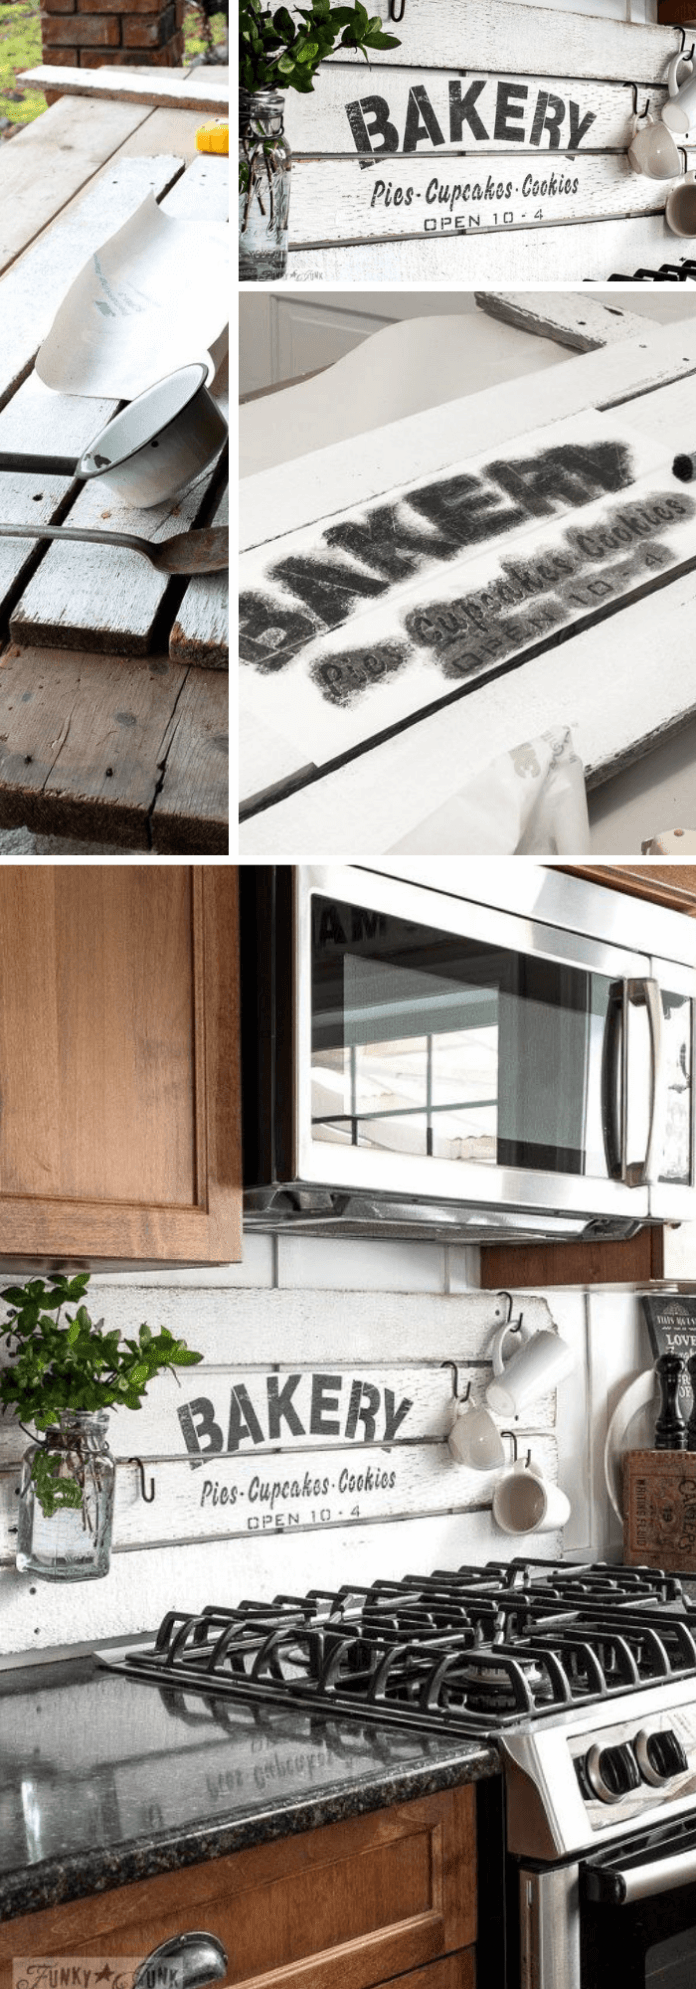 Kitchen Decor Projects With Reclaimed Wood DIY Shiplap Styled BAKERY Sign